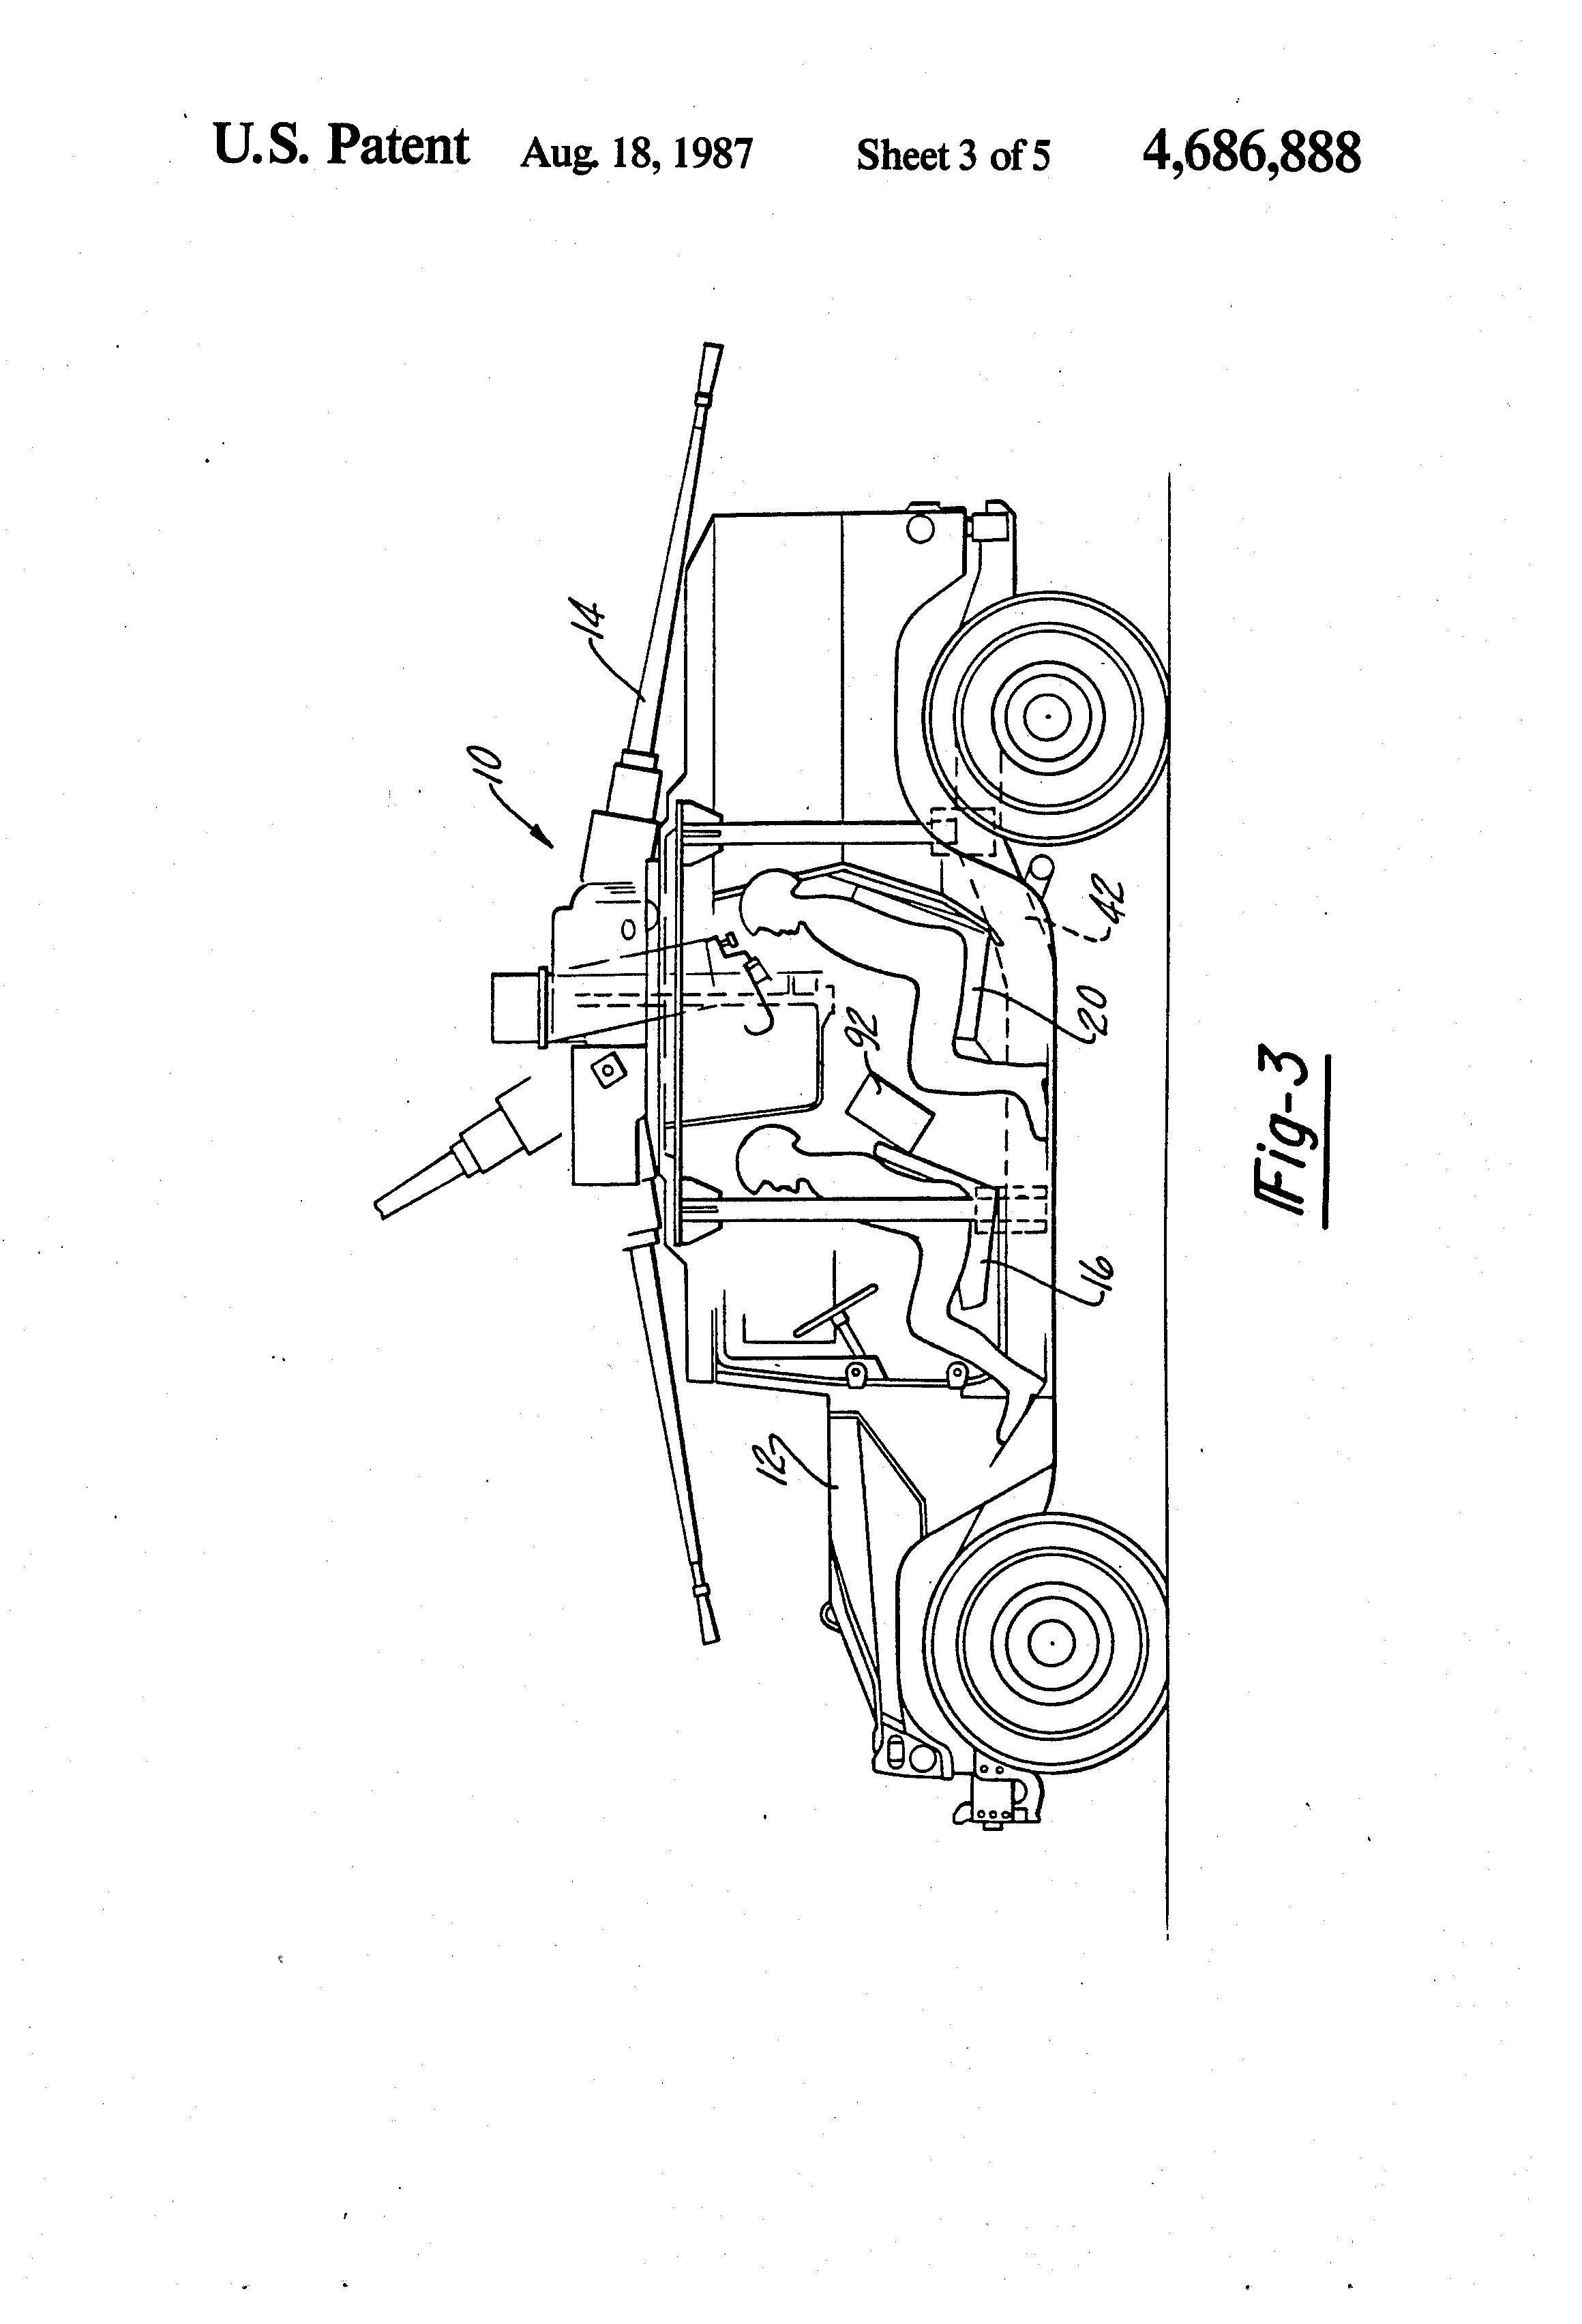 2005 Scion Xb Body Parts Diagram Electrical Wiring Diagrams 2004 Patent Us4686888 Turret System For Lightweight Military Vehicle 2006 Belt Replacement